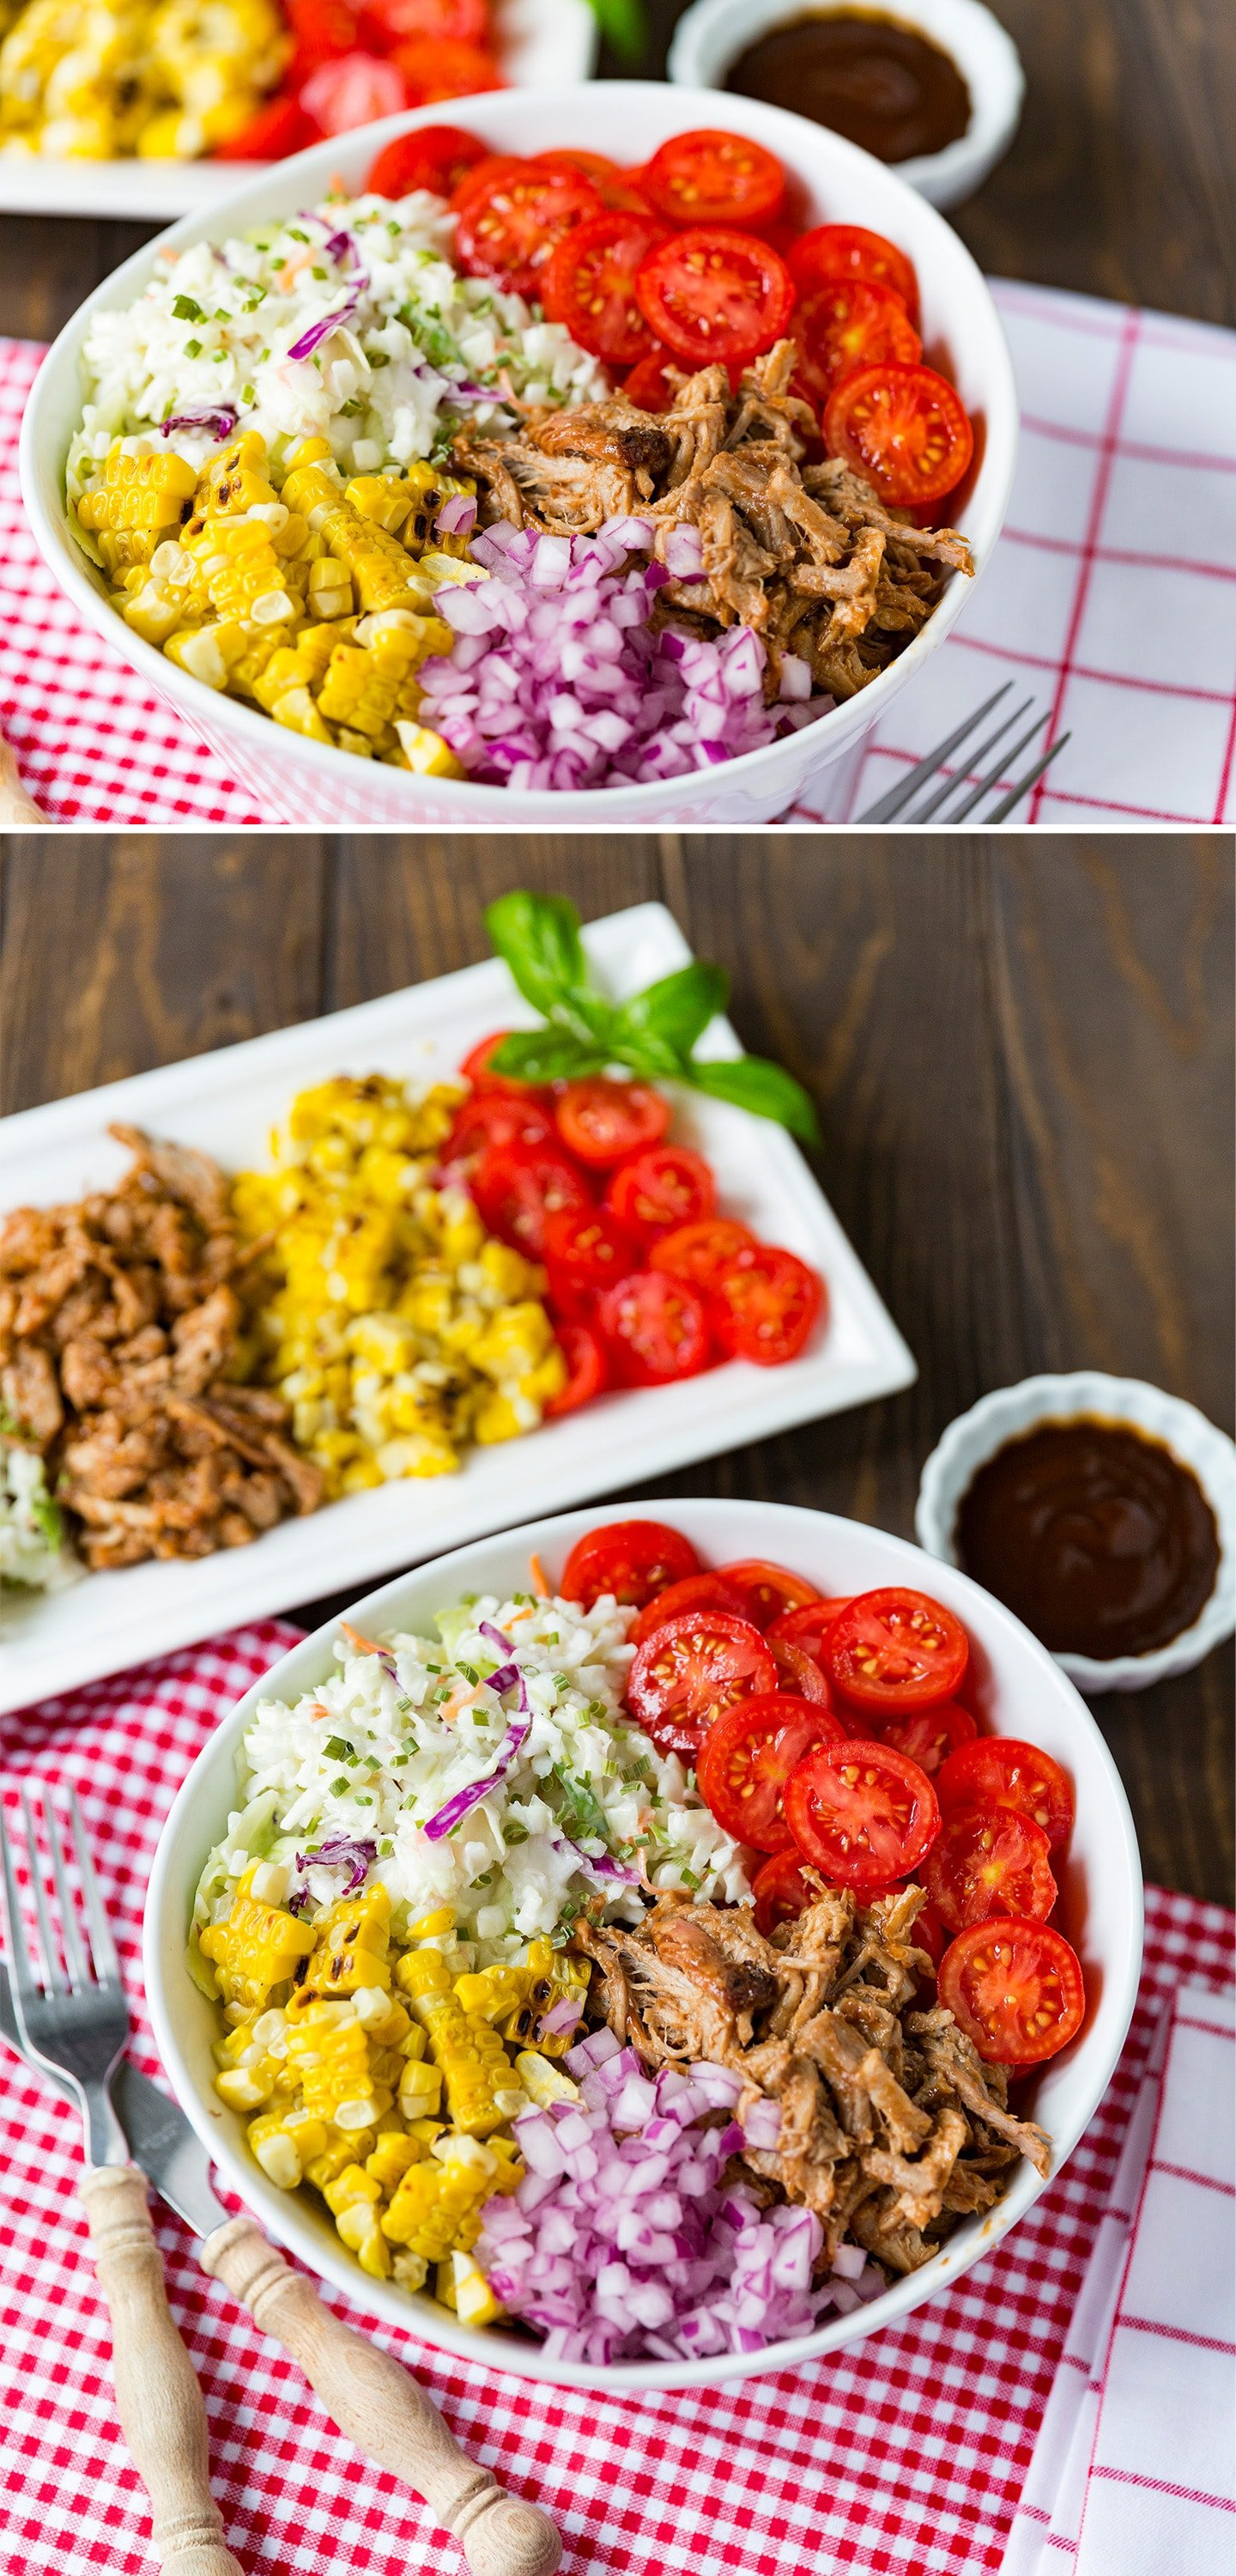 Barbecue Bowl Meal Idea